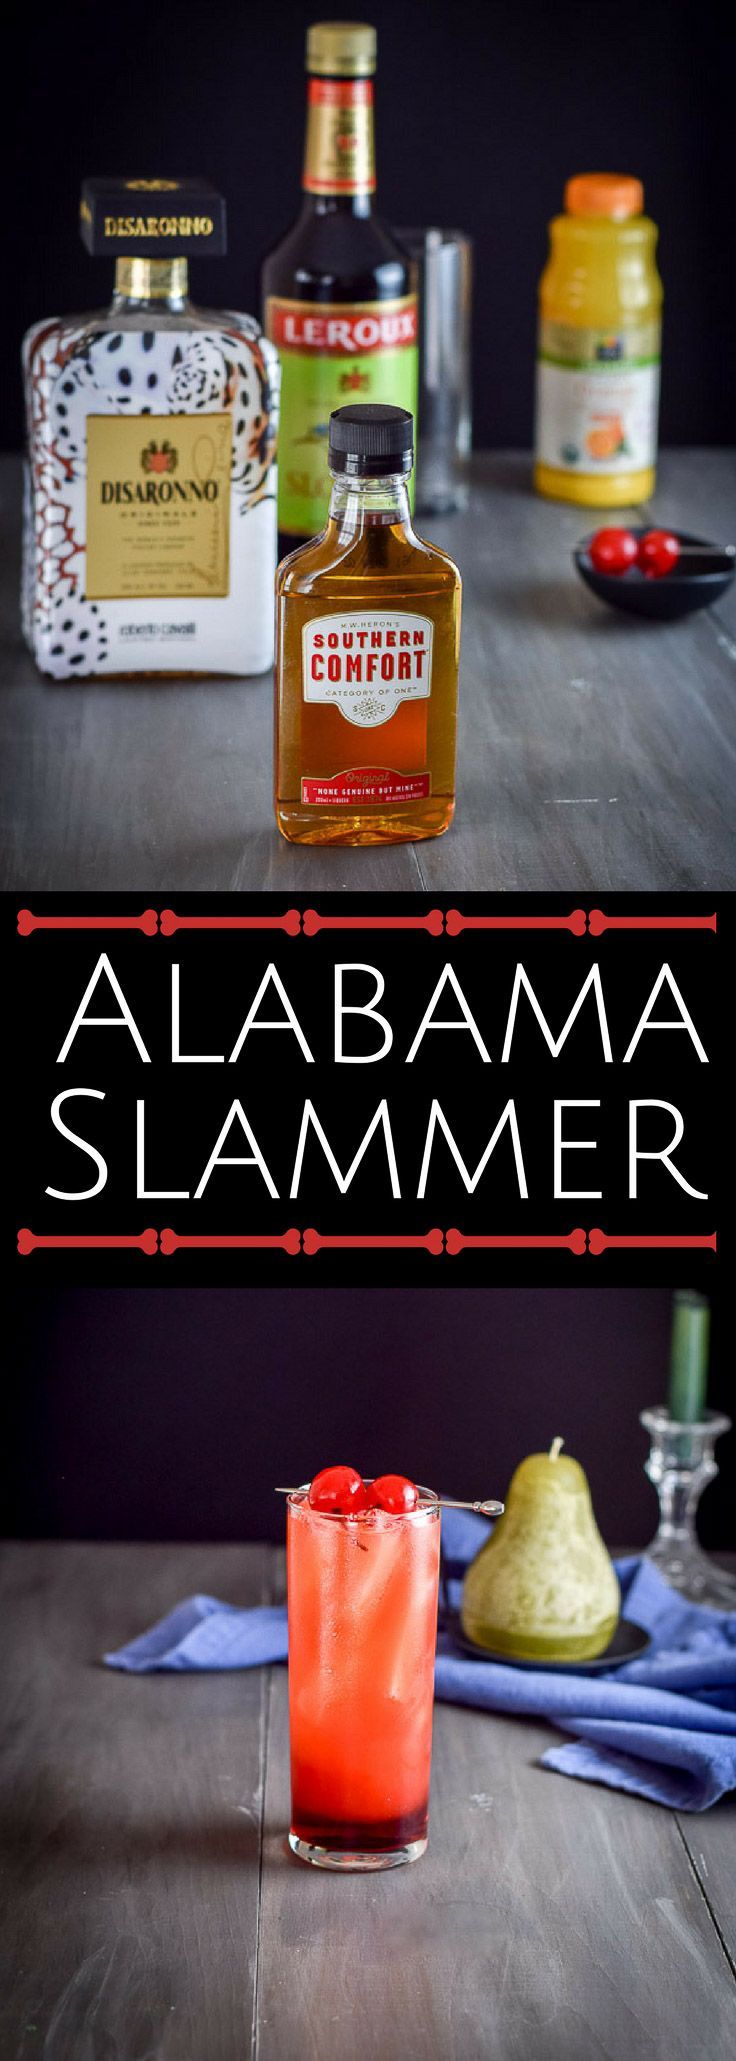 Shamalama Alabama Slammer cocktail recipe is super delicious that it will make you want to dance the shamalama, which involves shaking your hips a lot! via @dishesdelish https://ddel.co/alslckt